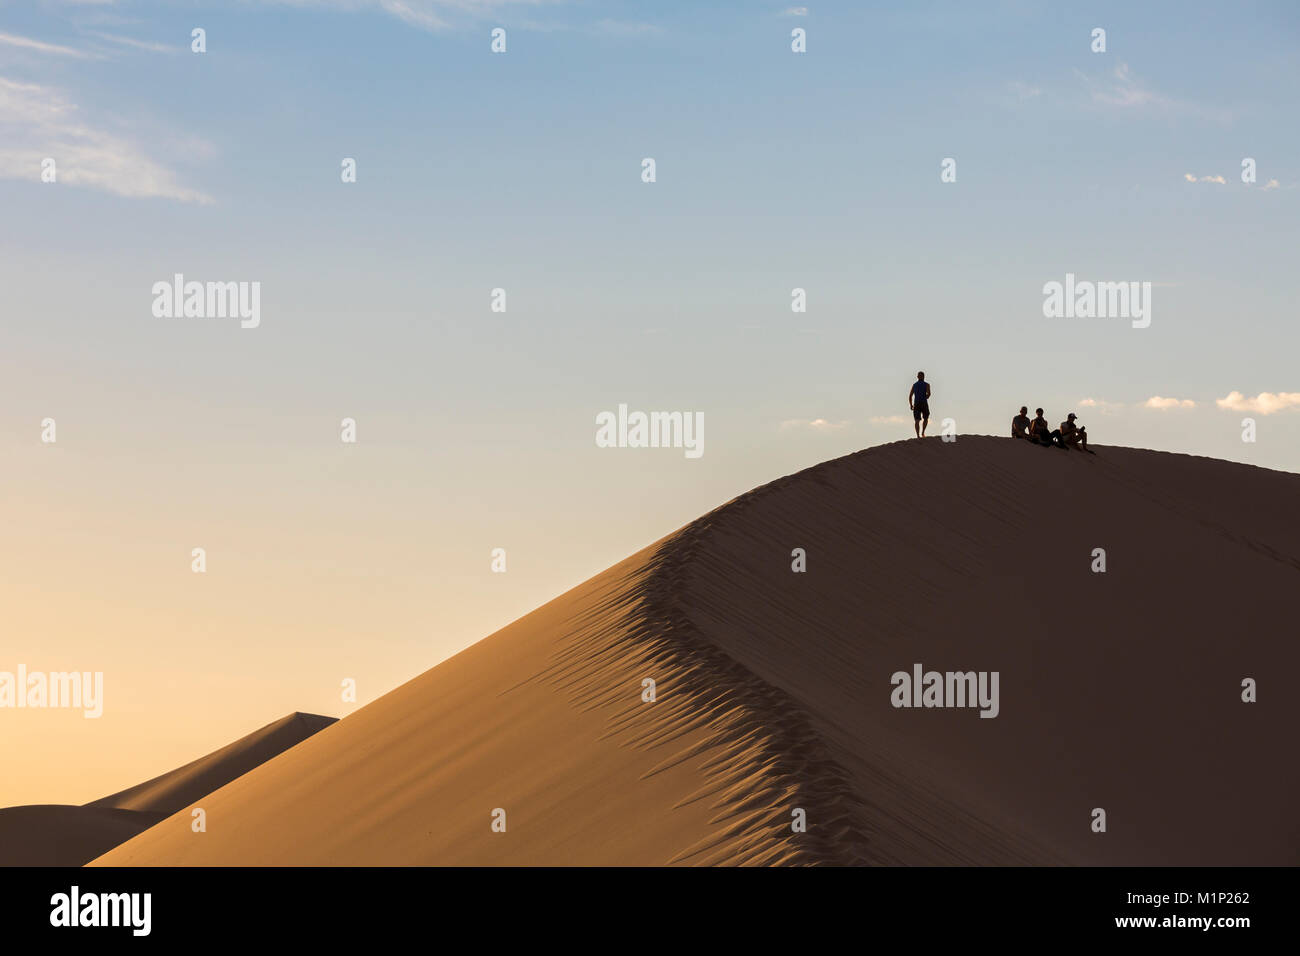 Les gens en silhouette sur les dunes de sable de Khongor Gobi Gurvan Saikhan en parc national, Sevrei district, Photo Stock